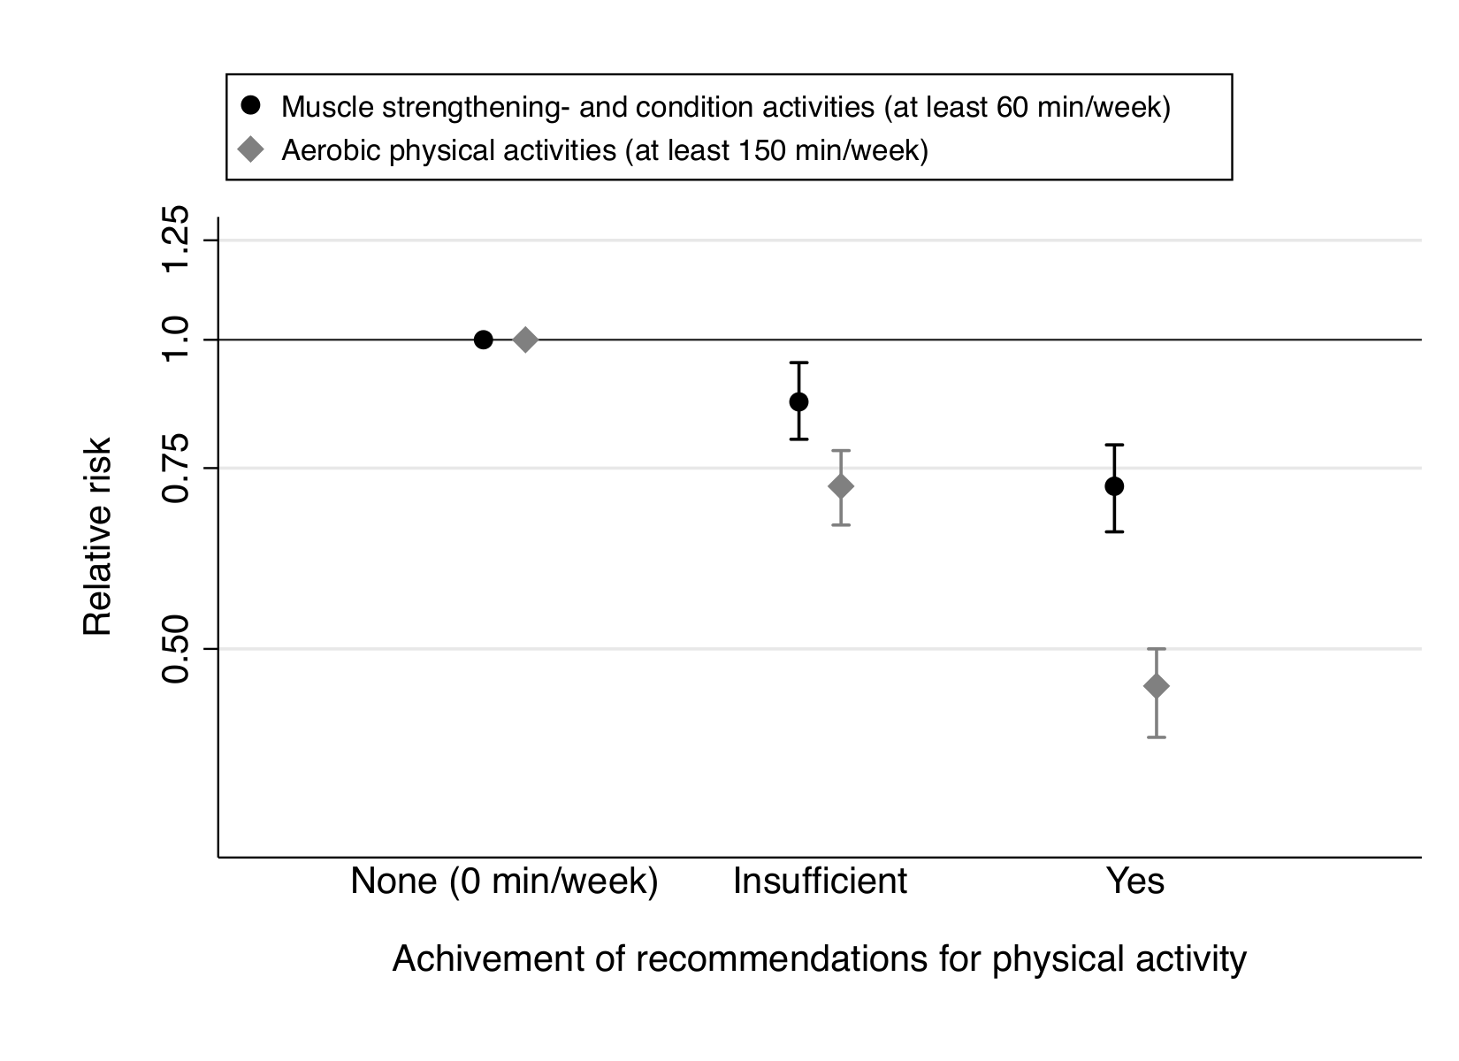 Muscle-strengthening and aerobic activity according to recommendations <em class=&quot;ref&quot;>[13]</em>–<em class=&quot;ref&quot;>[15]</em> and type 2 diabetes risk.